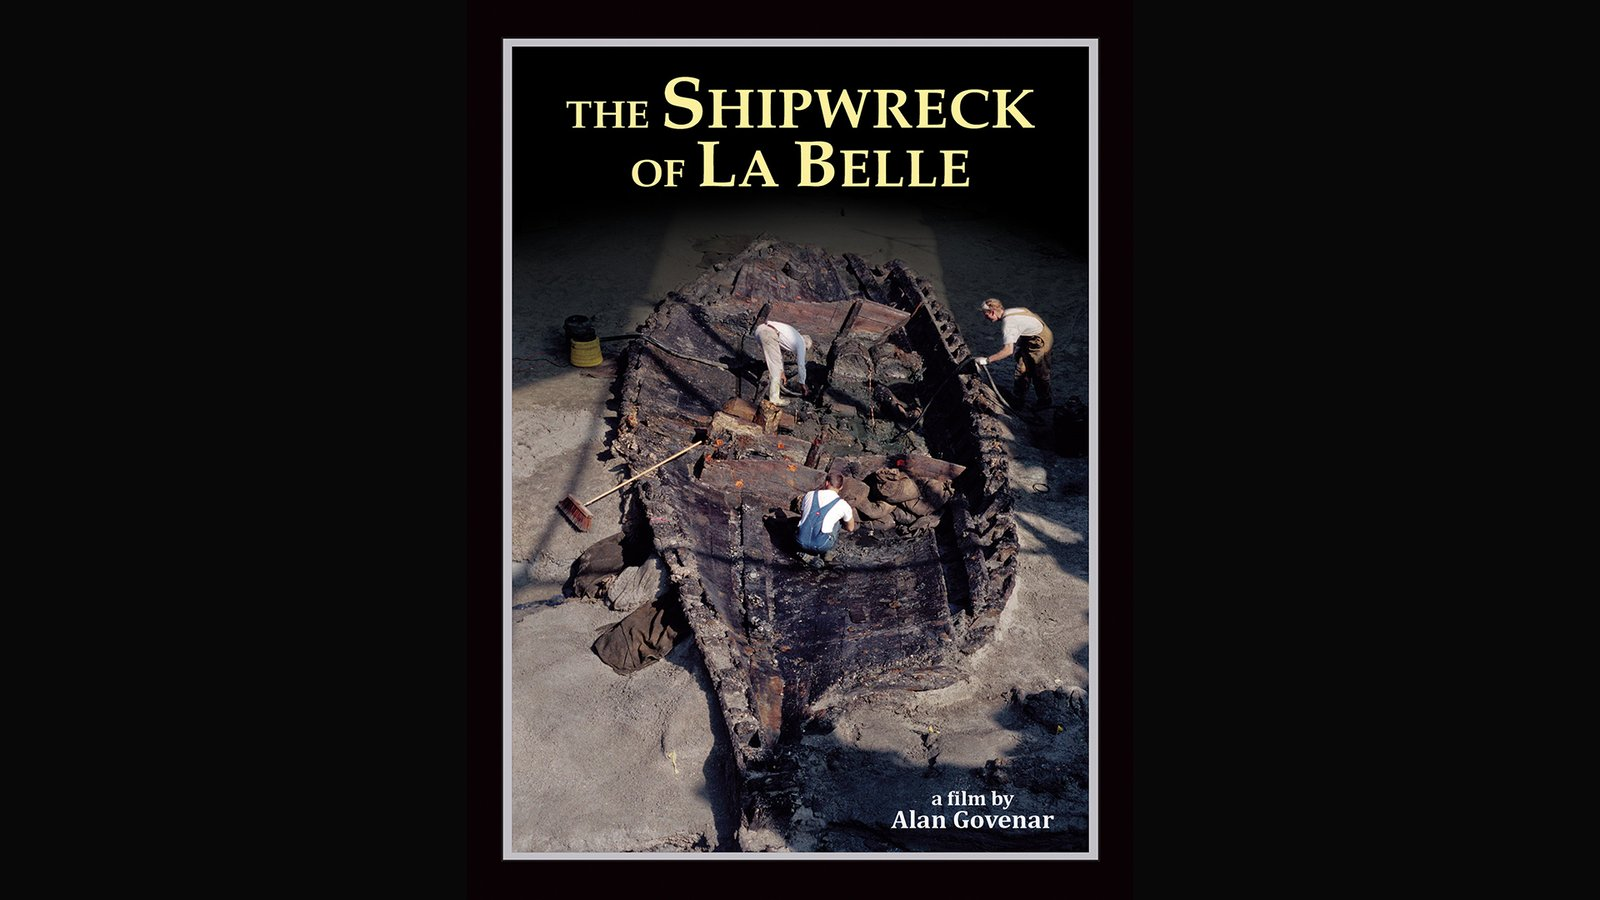 The Shipwreck of La Belle - An Archeological Discovery